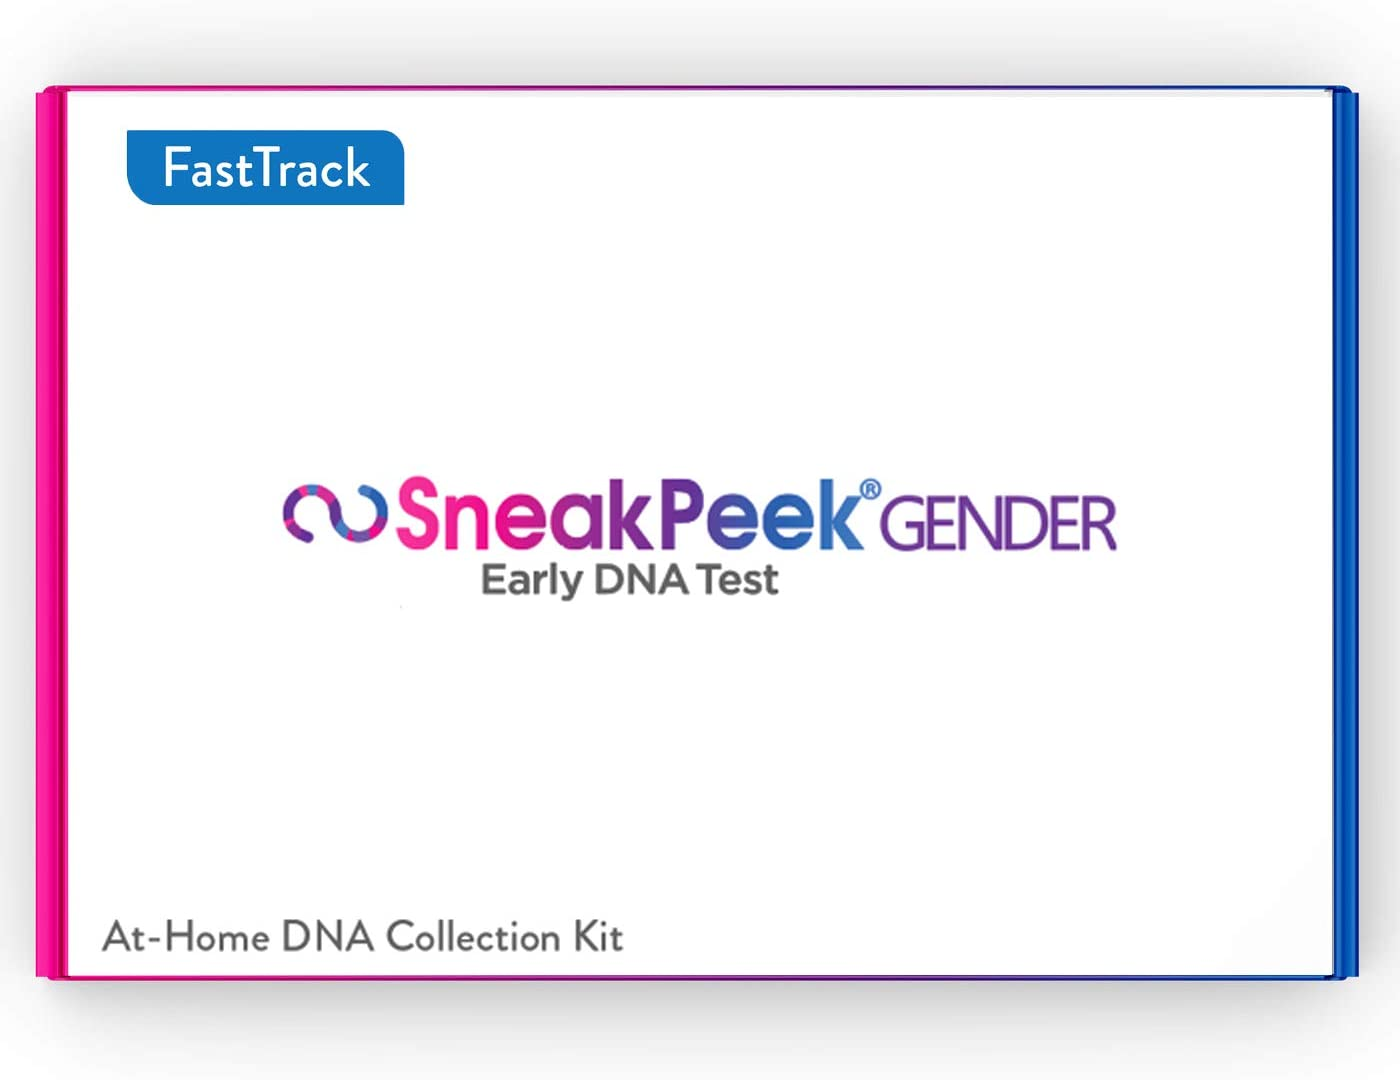 SneakPeek Early Gender at-Home DNA Test Kit – Predicts Baby Gender at 99.9% Accuracy¹ (Fast Track)